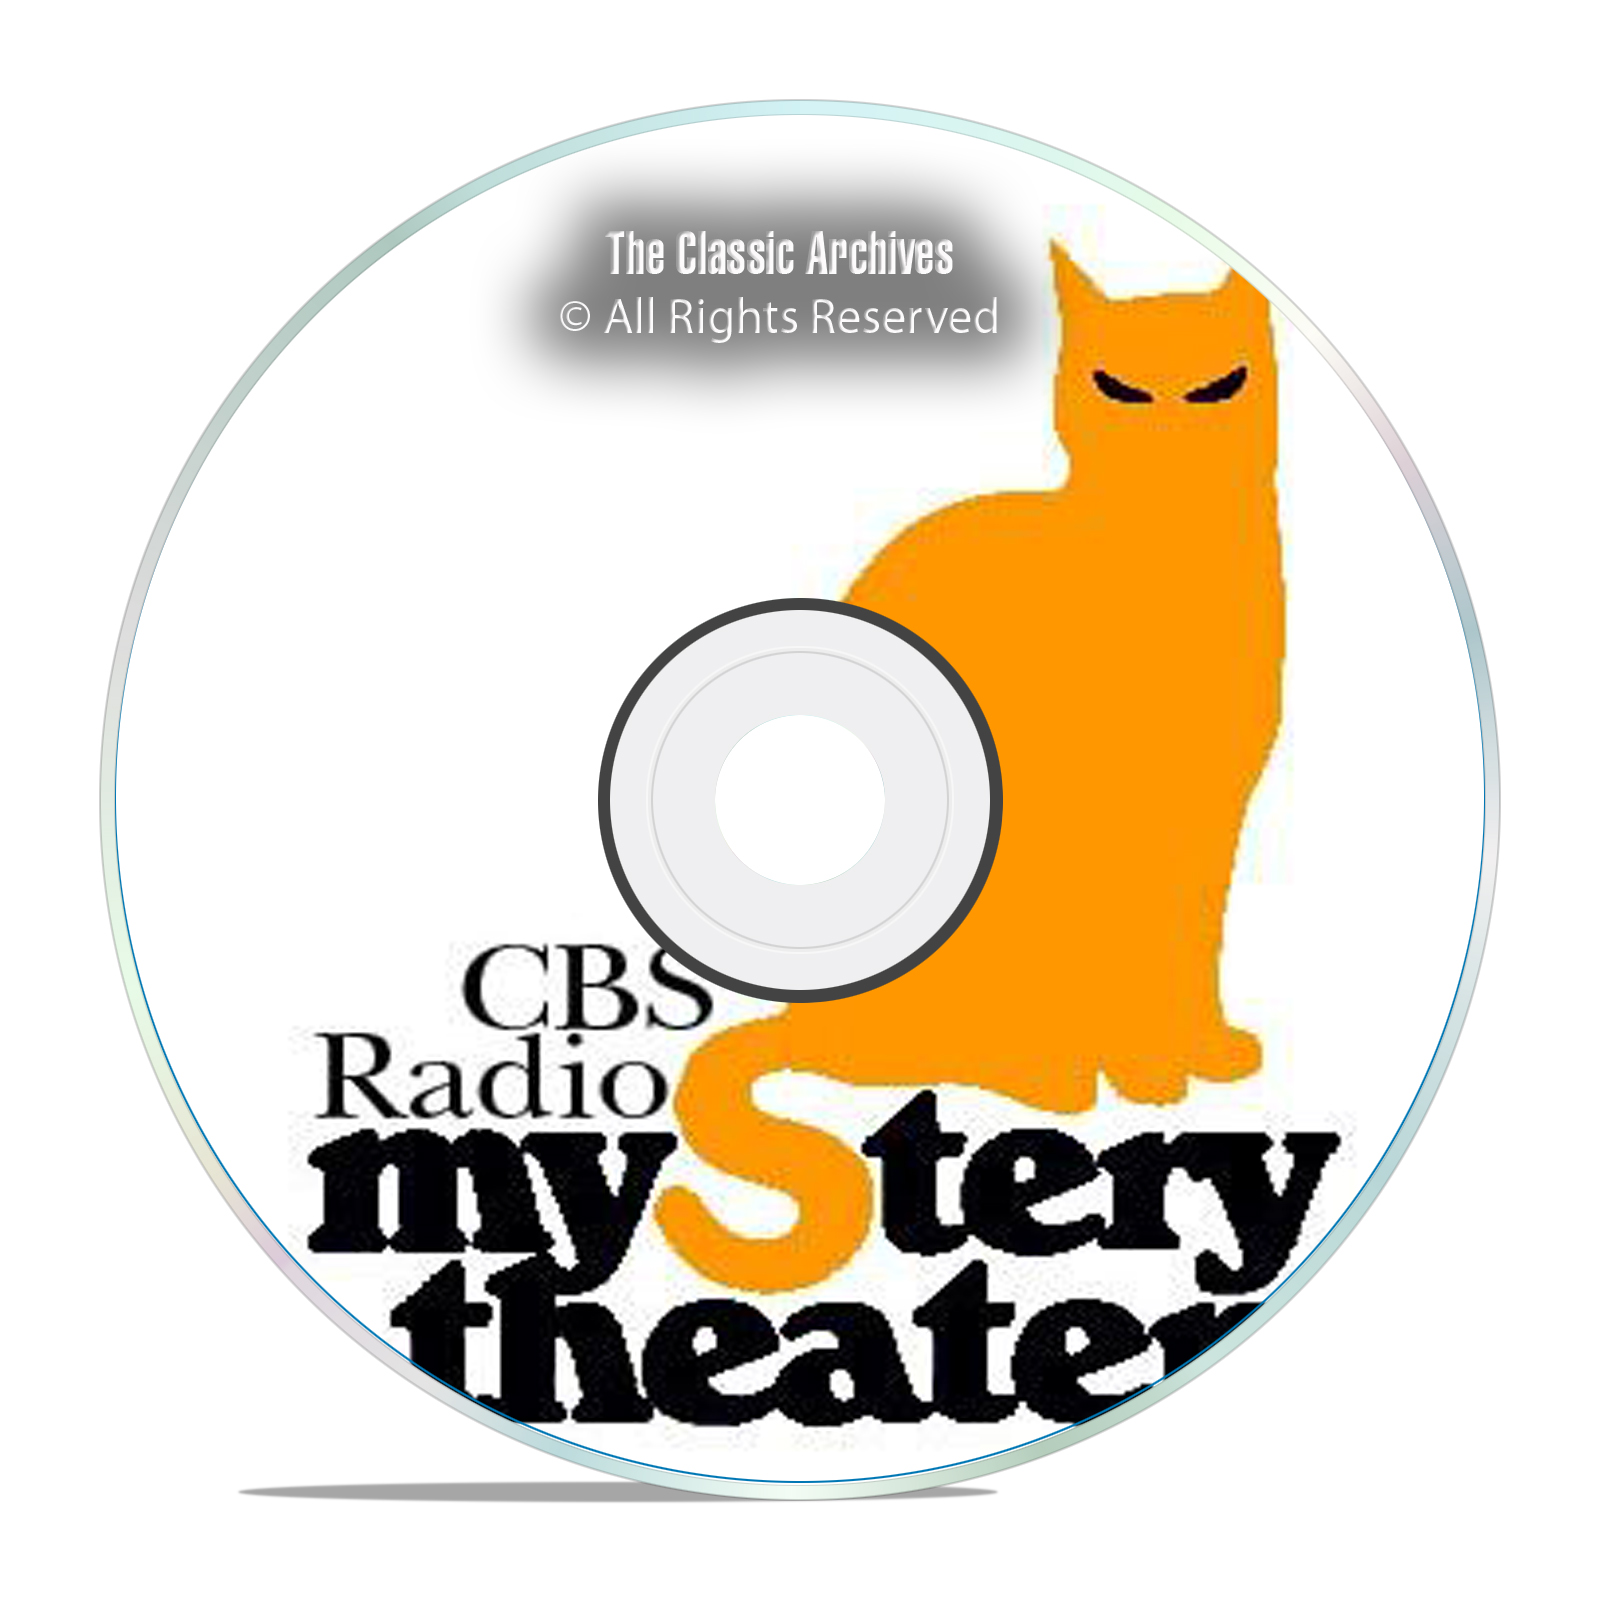 CBS RADIO MYSTERY THEATER, 1517 Old Time Radio Episodes COMPLETE SET OTR